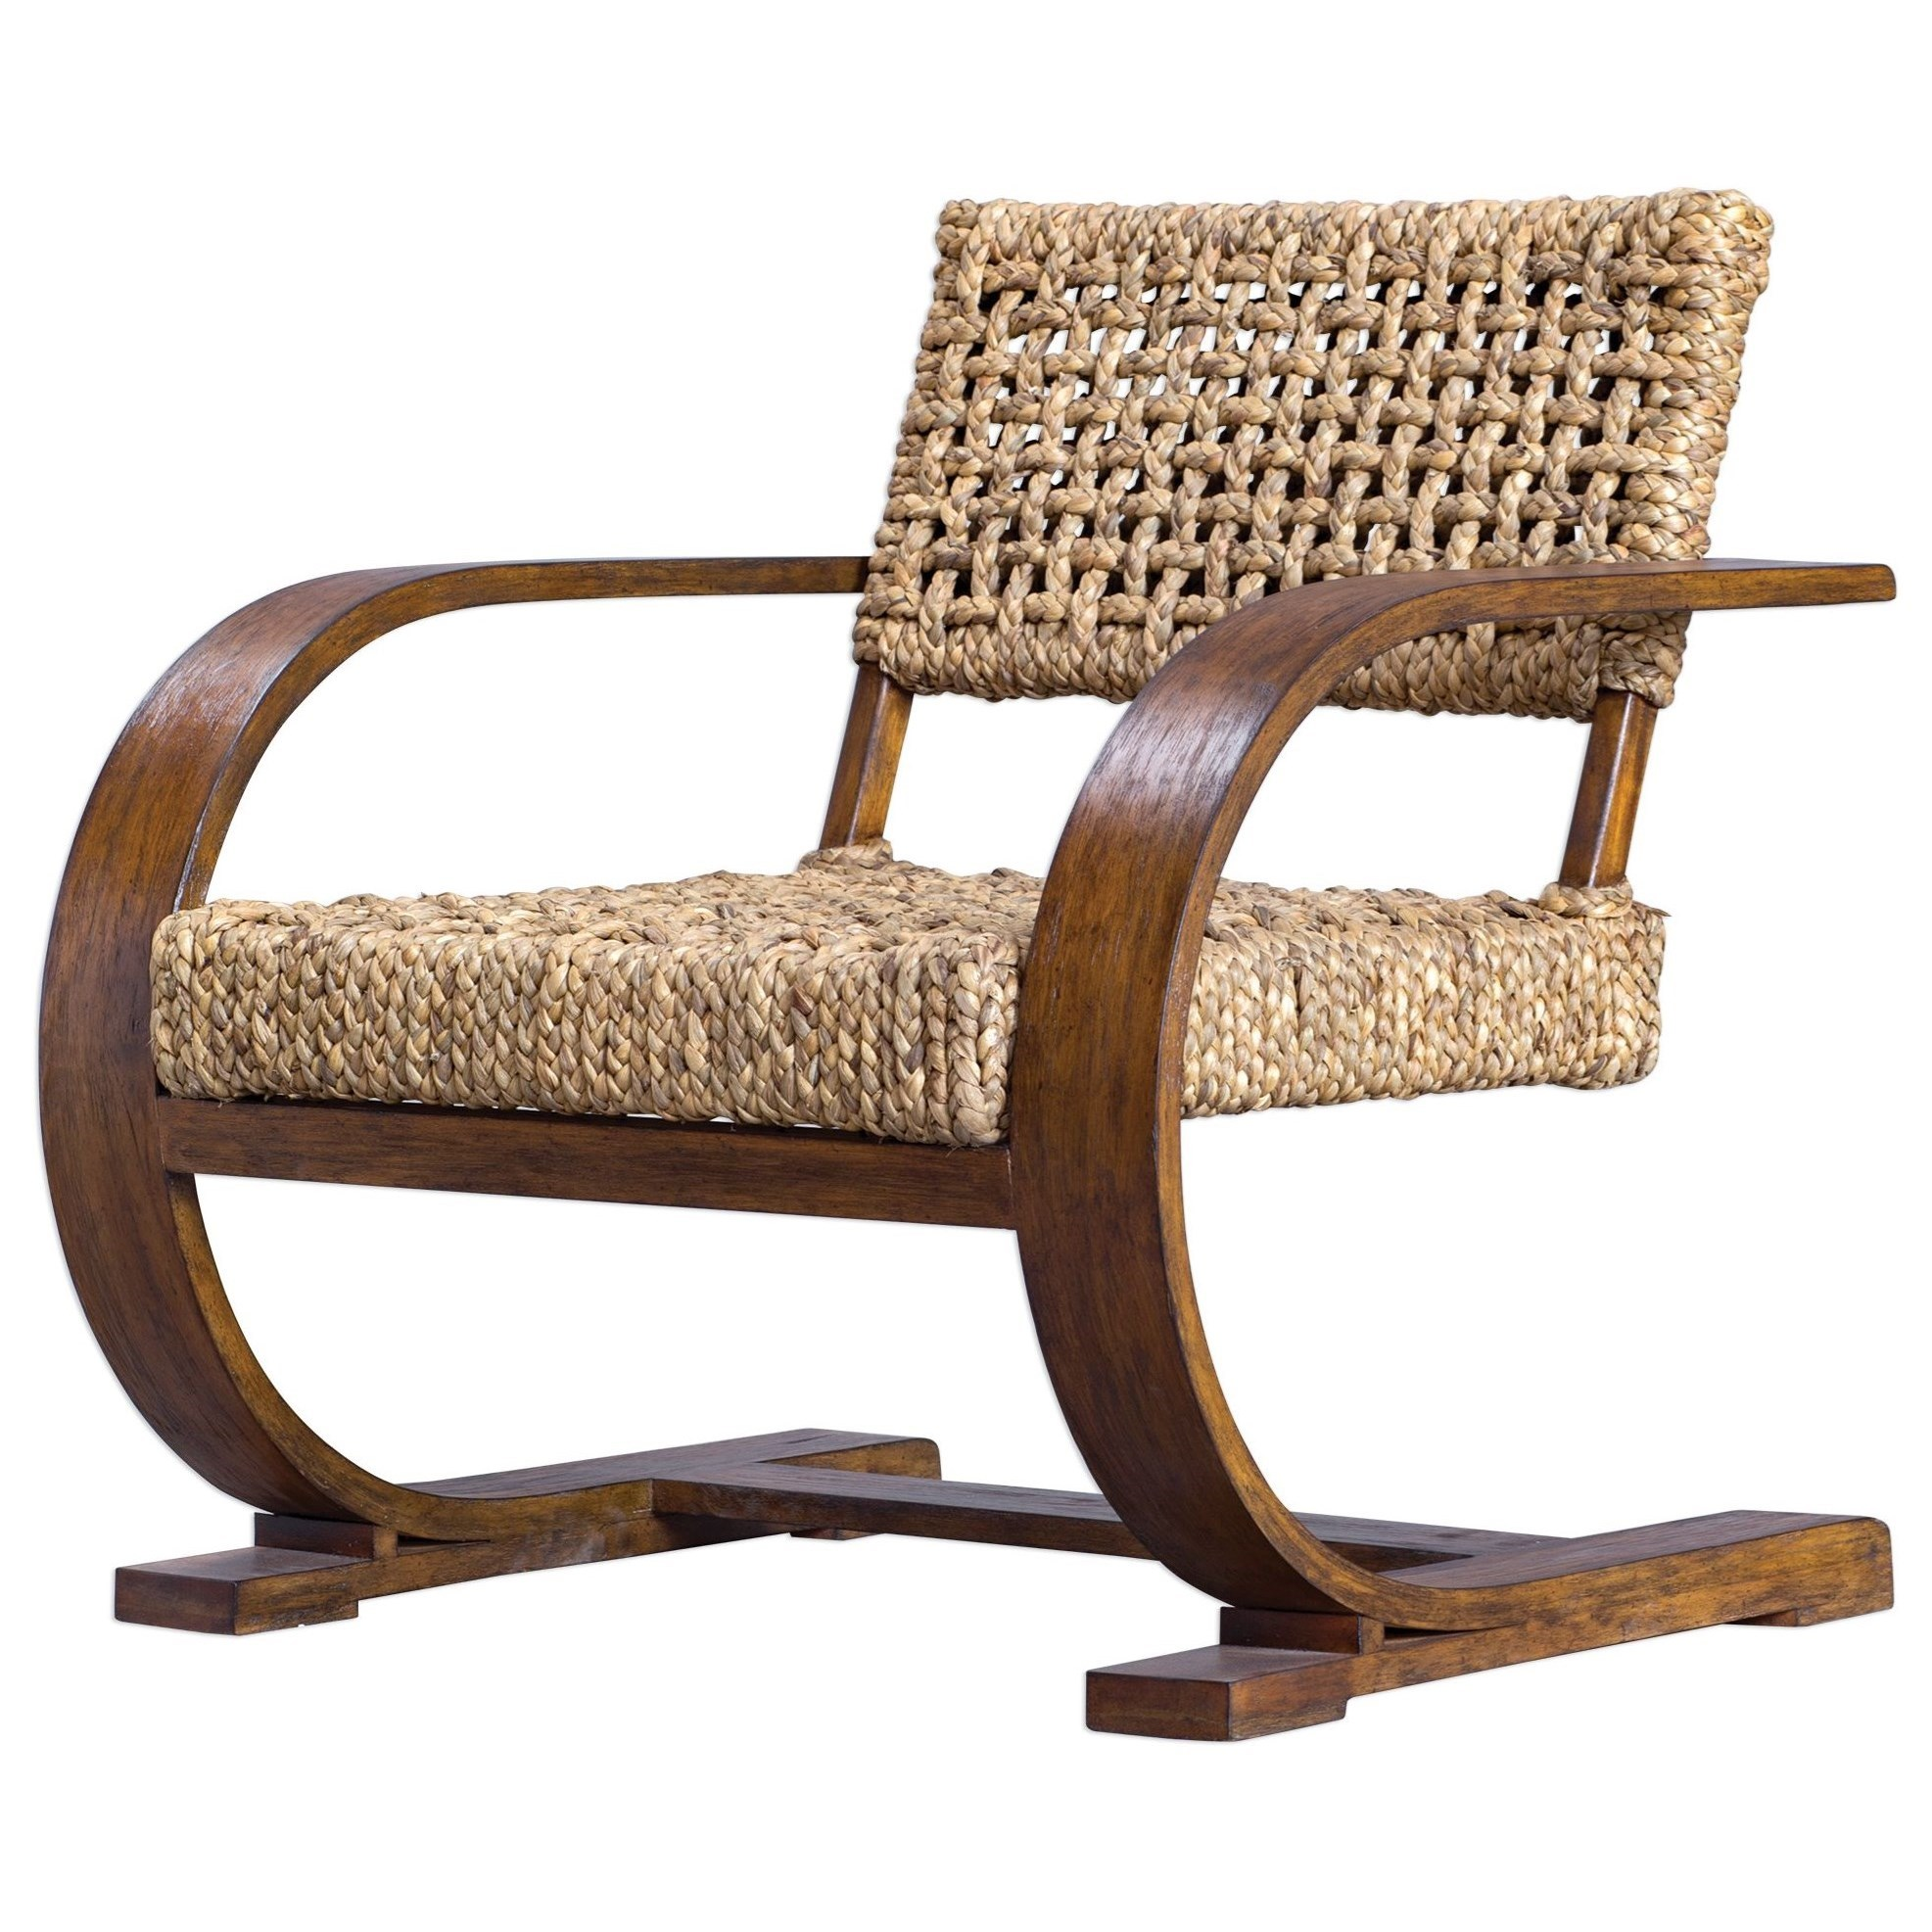 Accent Furniture - Accent Chairs Rehema Natural Woven Accent Chair by Uttermost at Upper Room Home Furnishings